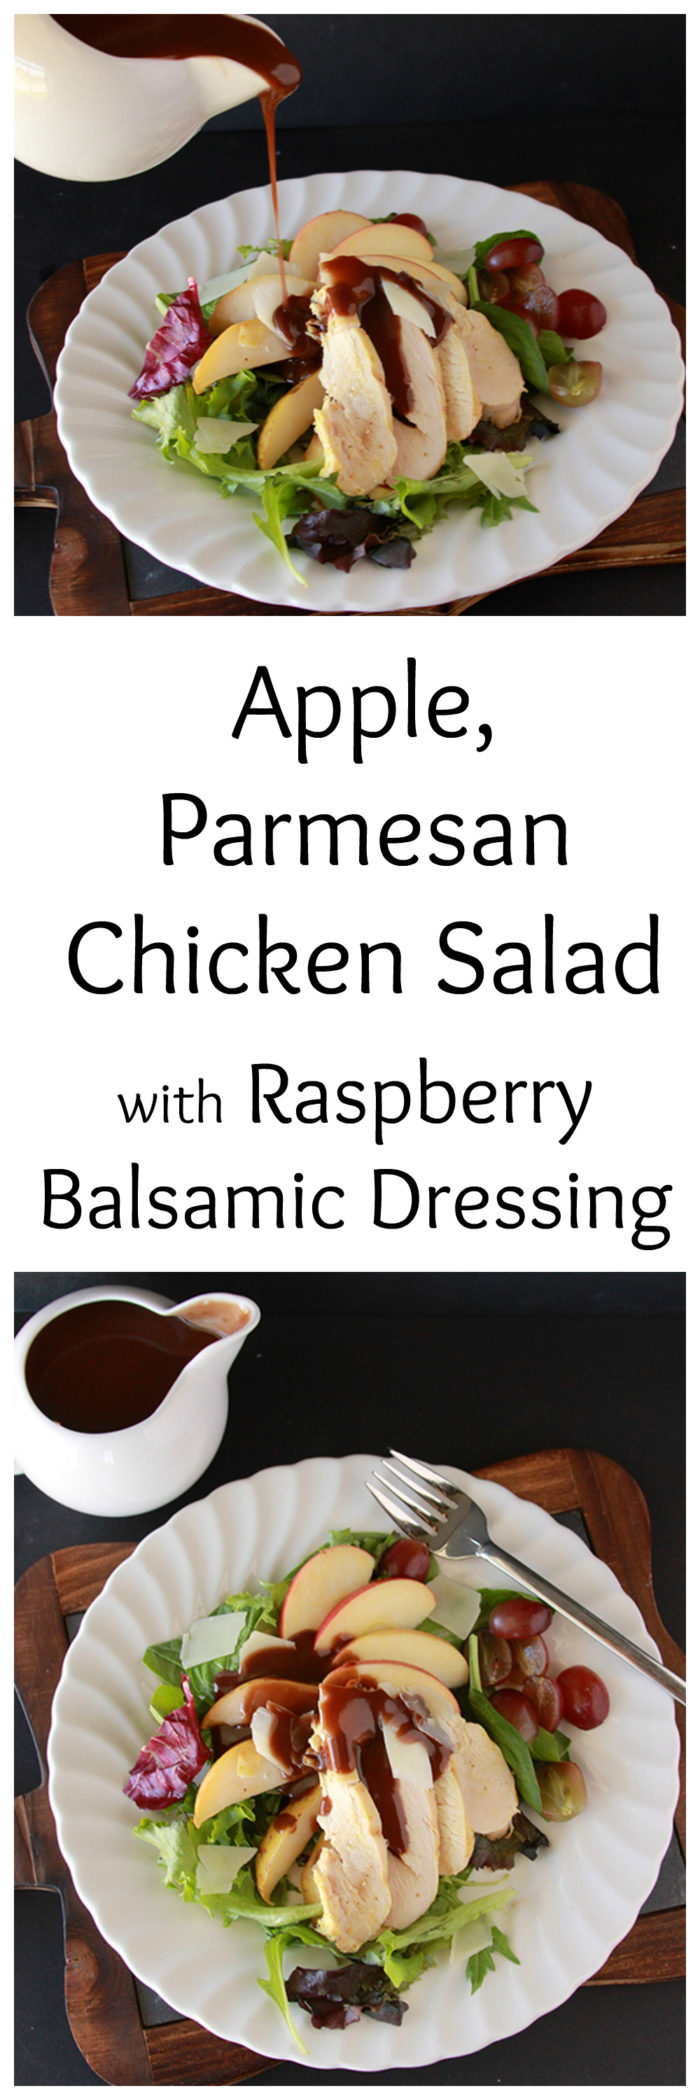 Apple, Parmesan Chicken Salad with Raspberry Balsamic Dressing on www.cookingwithruthie.com